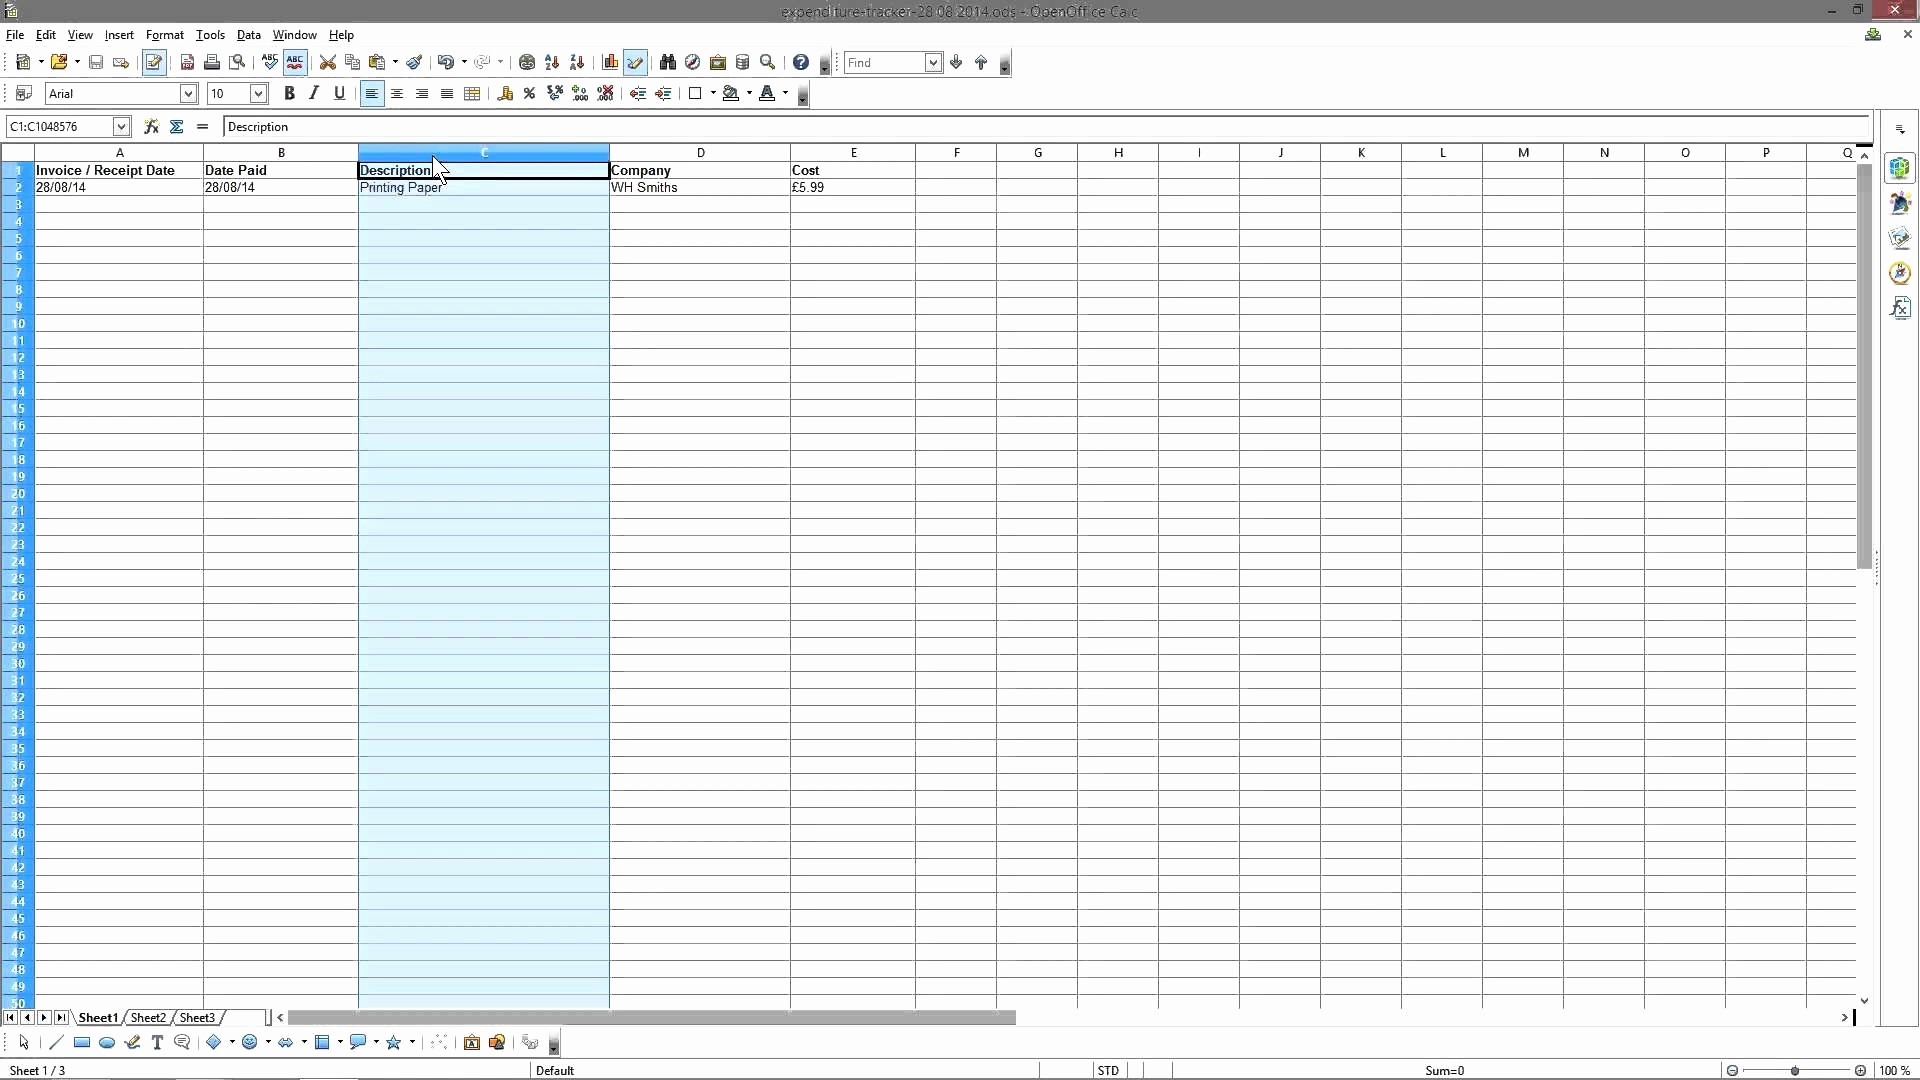 Excel Template For Small Business Bookkeeping Spreadsheet Examples Inside Small Business Bookkeeping Spreadsheet